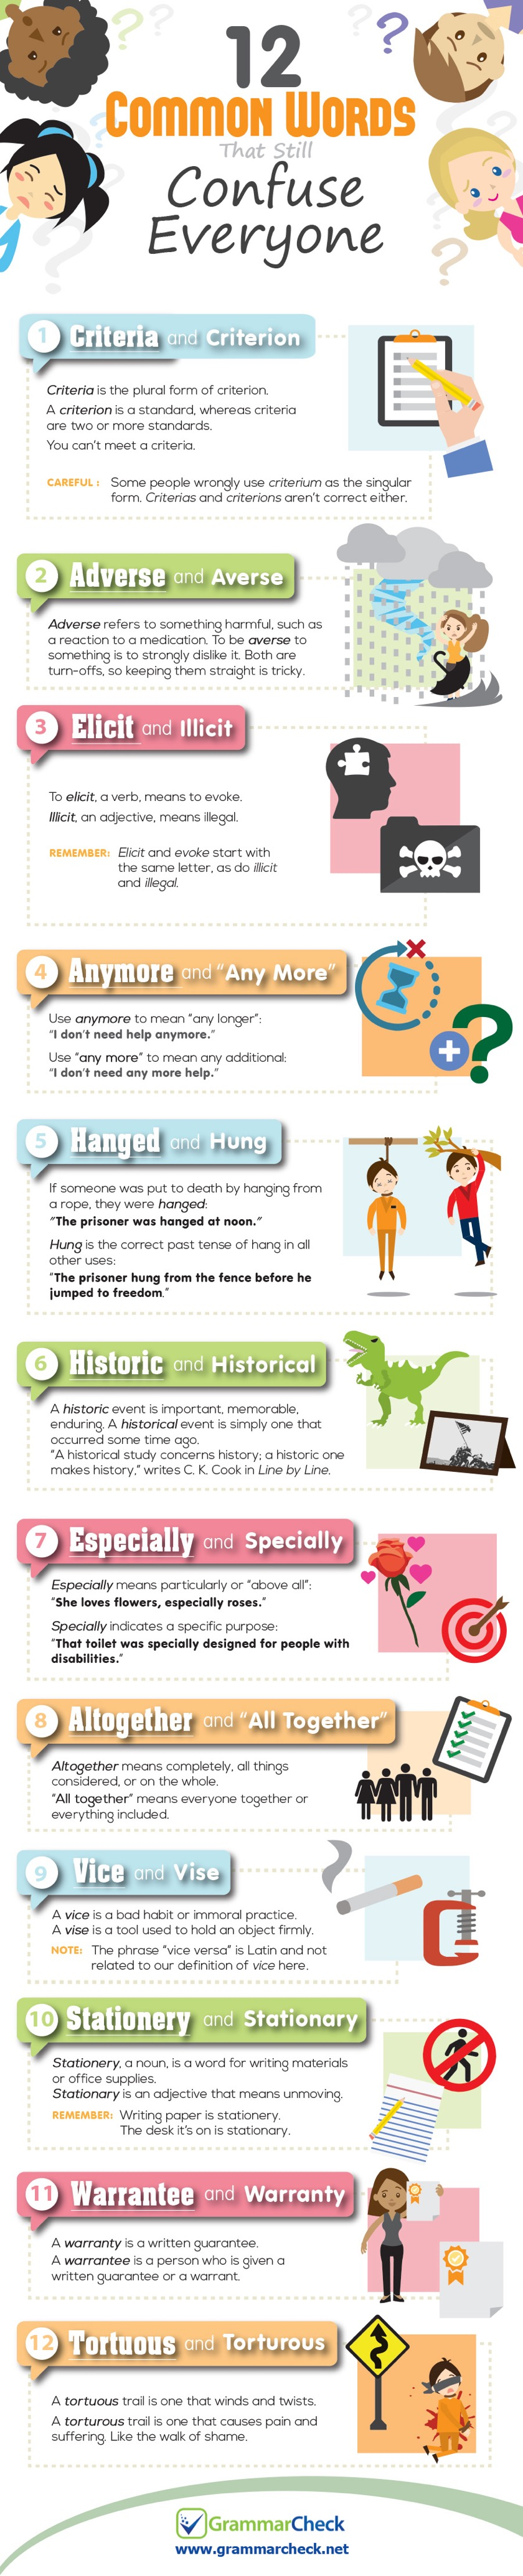 Common words that still confuse everyone - full infographic